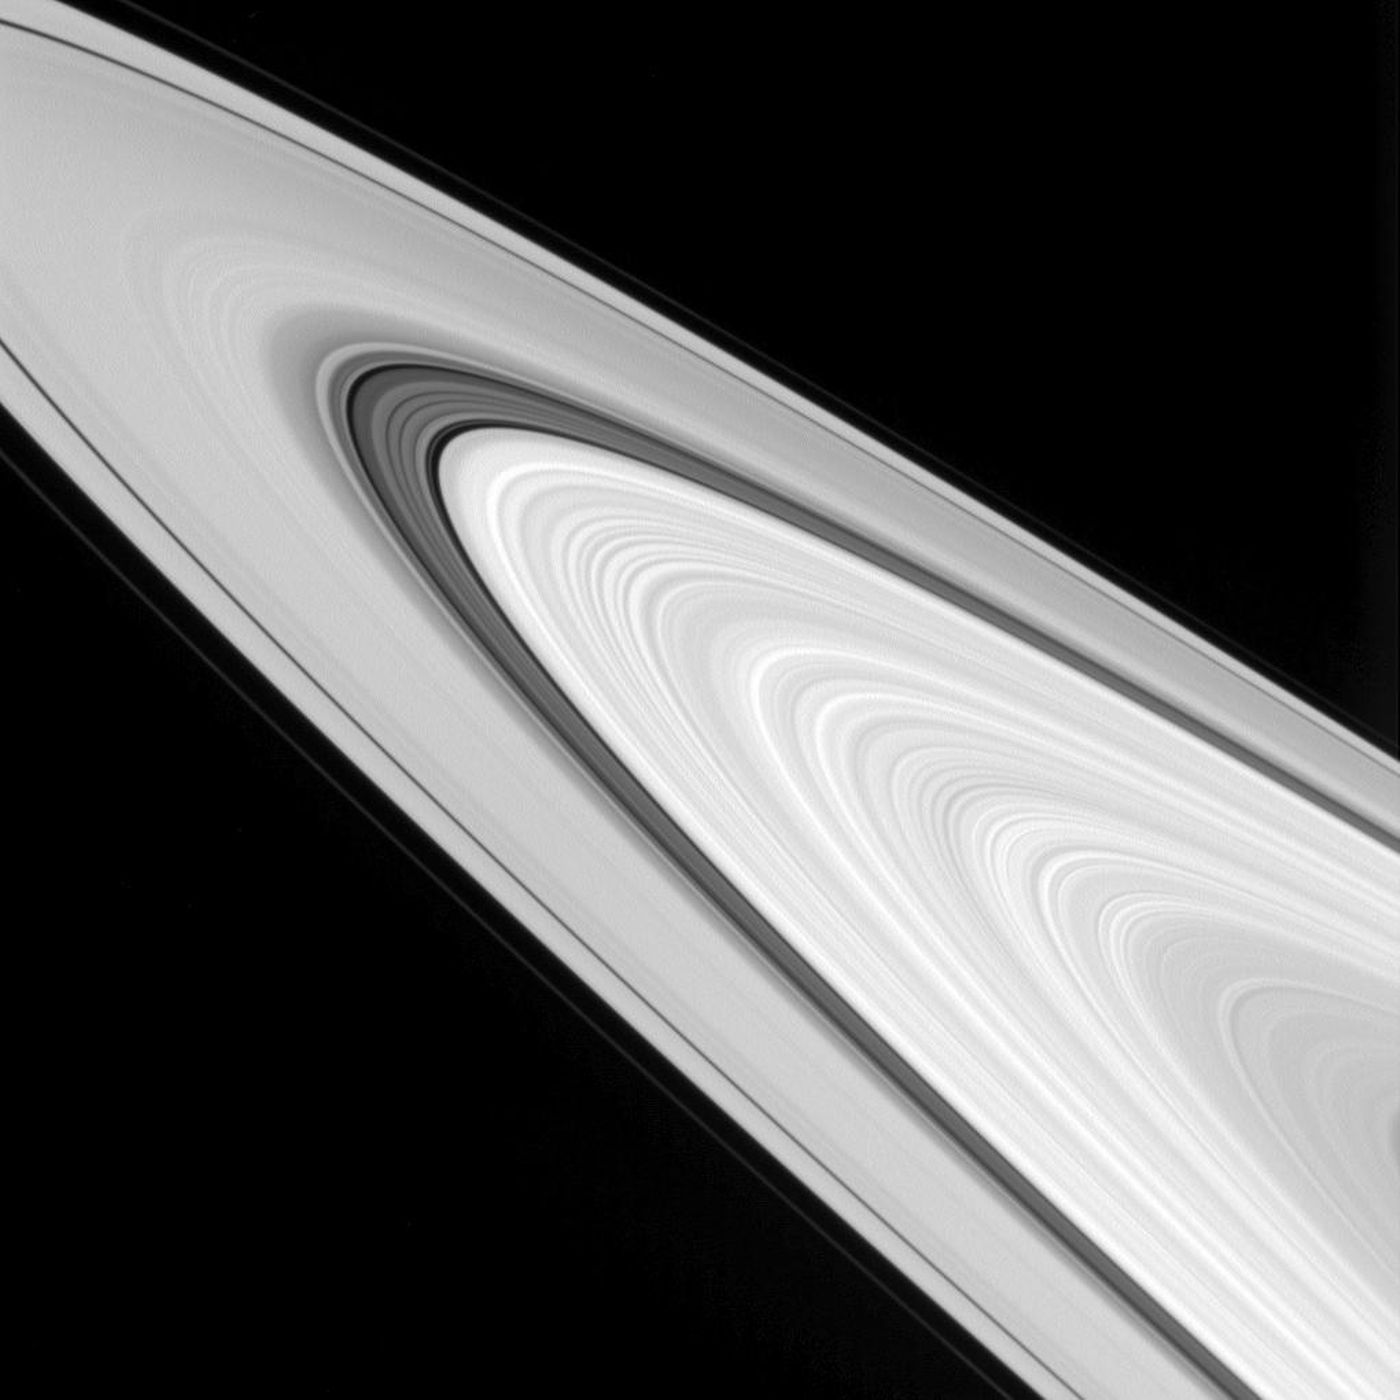 Cassini spacecraft took this incredible close-up of Saturn's rings from a distance of about 283,000 miles (456,000 kilometers) on Sept. 24, 2016.